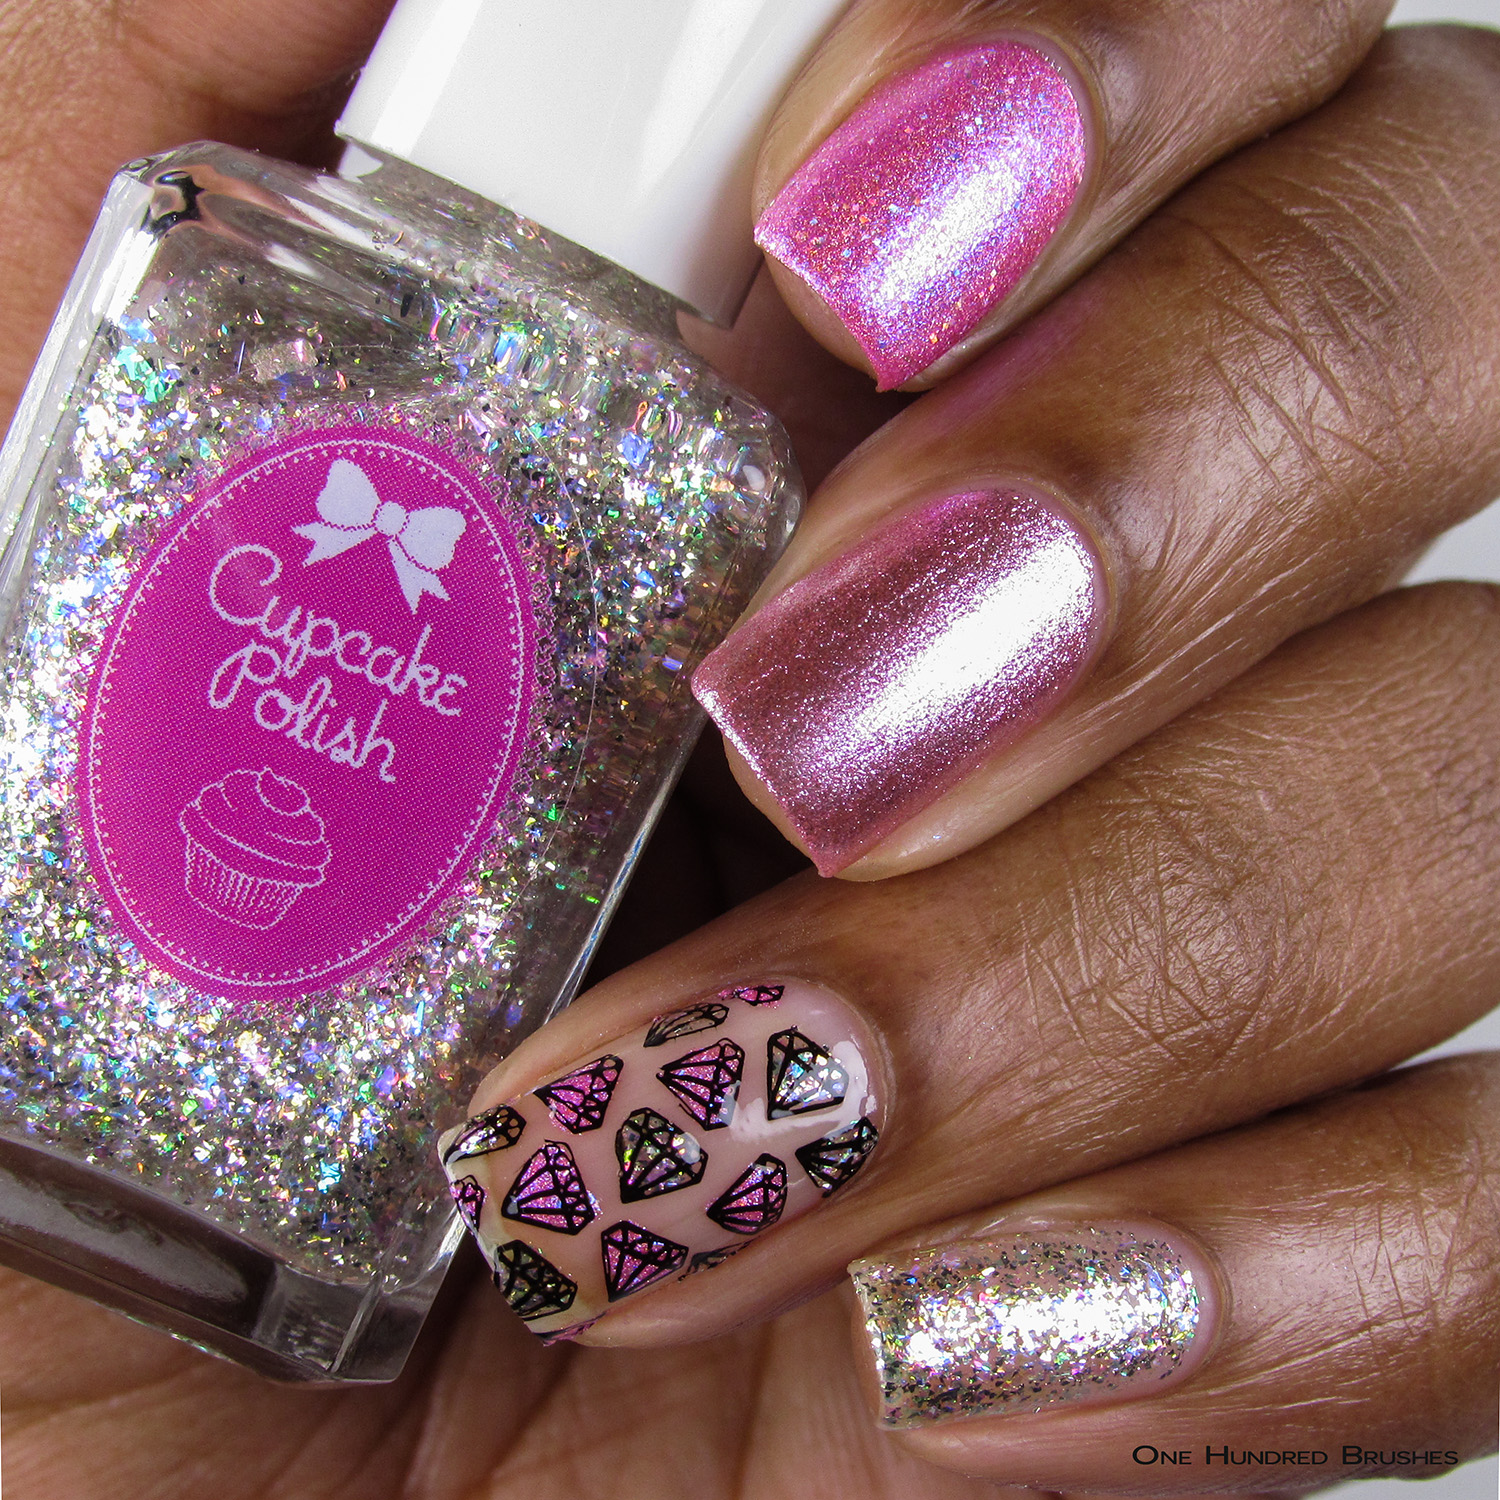 Celebrate 5 Years with Diamonds - Bottle Front - 5th Year Anniversary Trio - Cupcake Polish